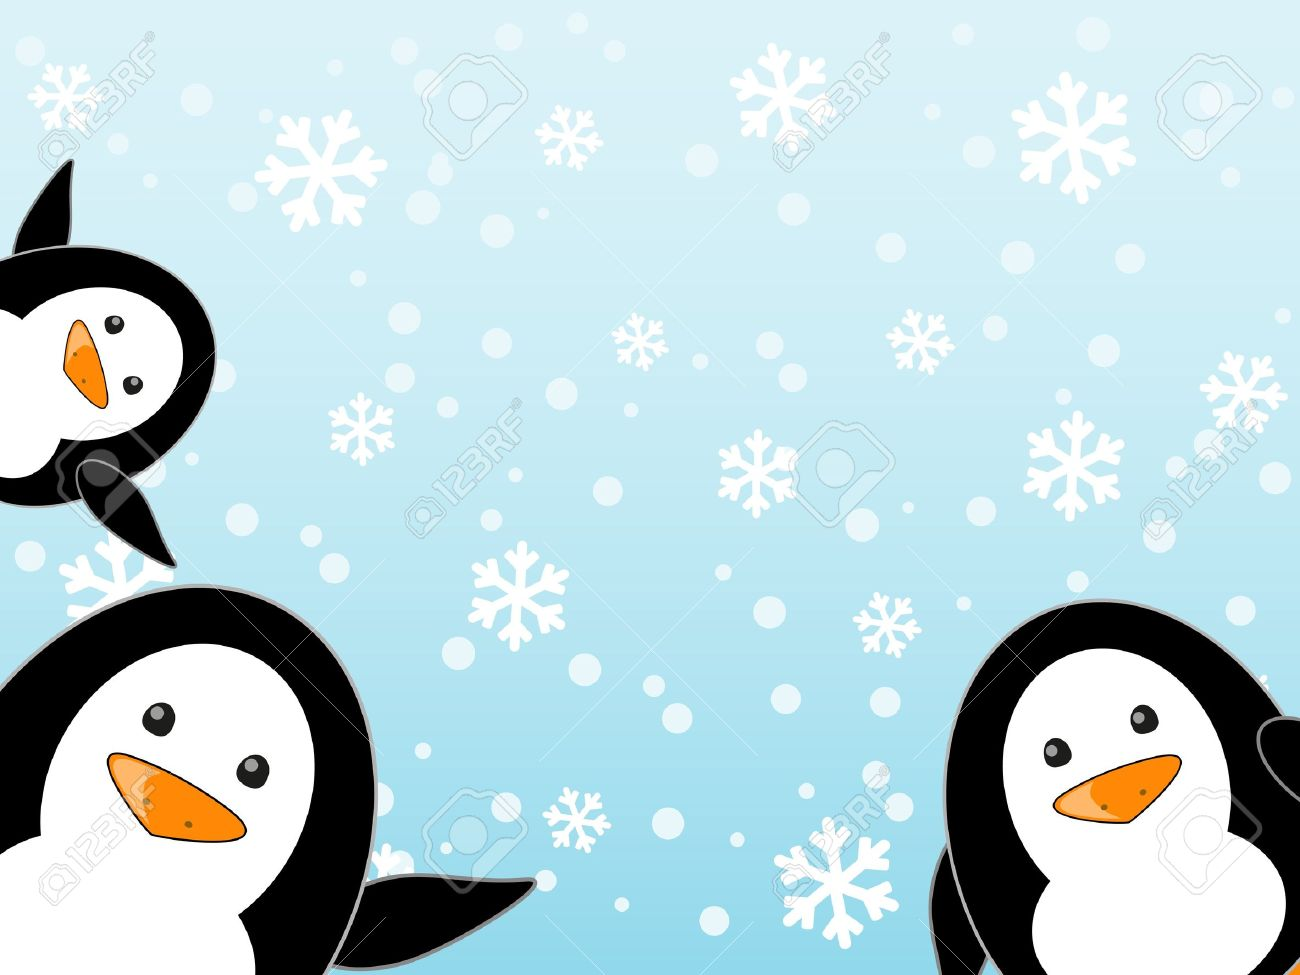 Penguin Family On Winter Background Royalty Free Cliparts Vectors And Stock Illustration Image 16703615